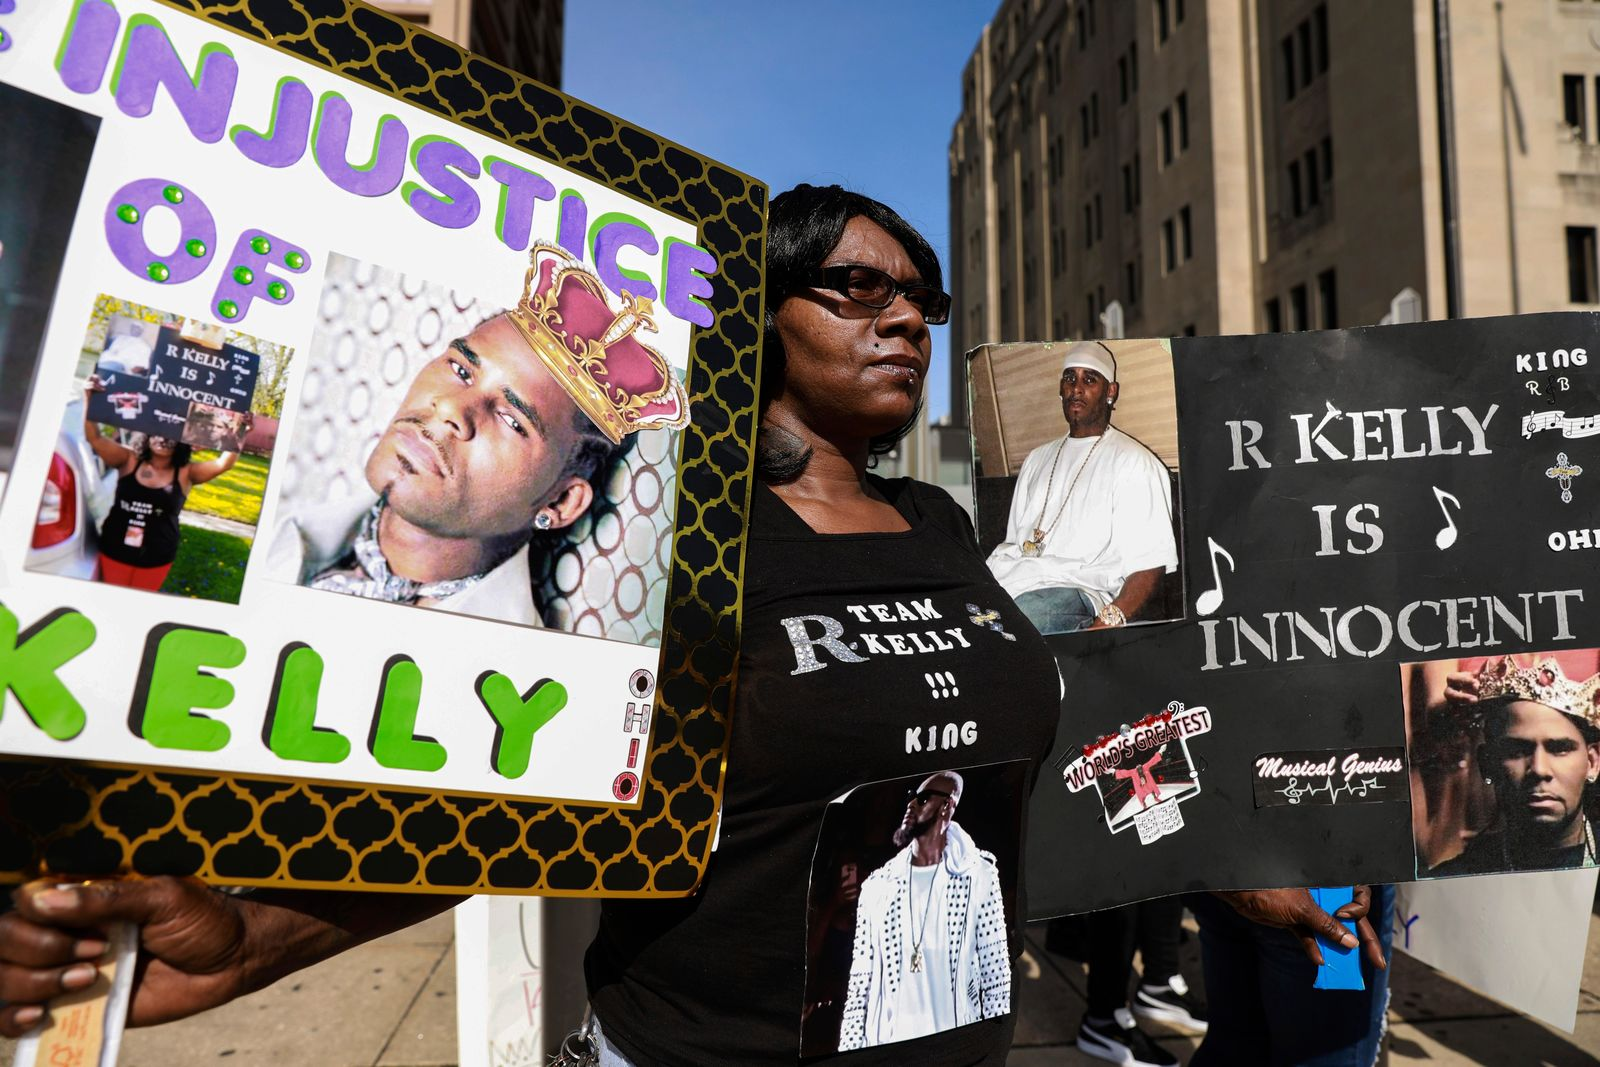 A supporter of R. Kelly protests in front of the Leighton Criminal Court building ahead of his arrival for an arraignment on sex-related felonies Wednesday, June 26, 2019 in Chicago. (AP Photo/Amr Alfiky)